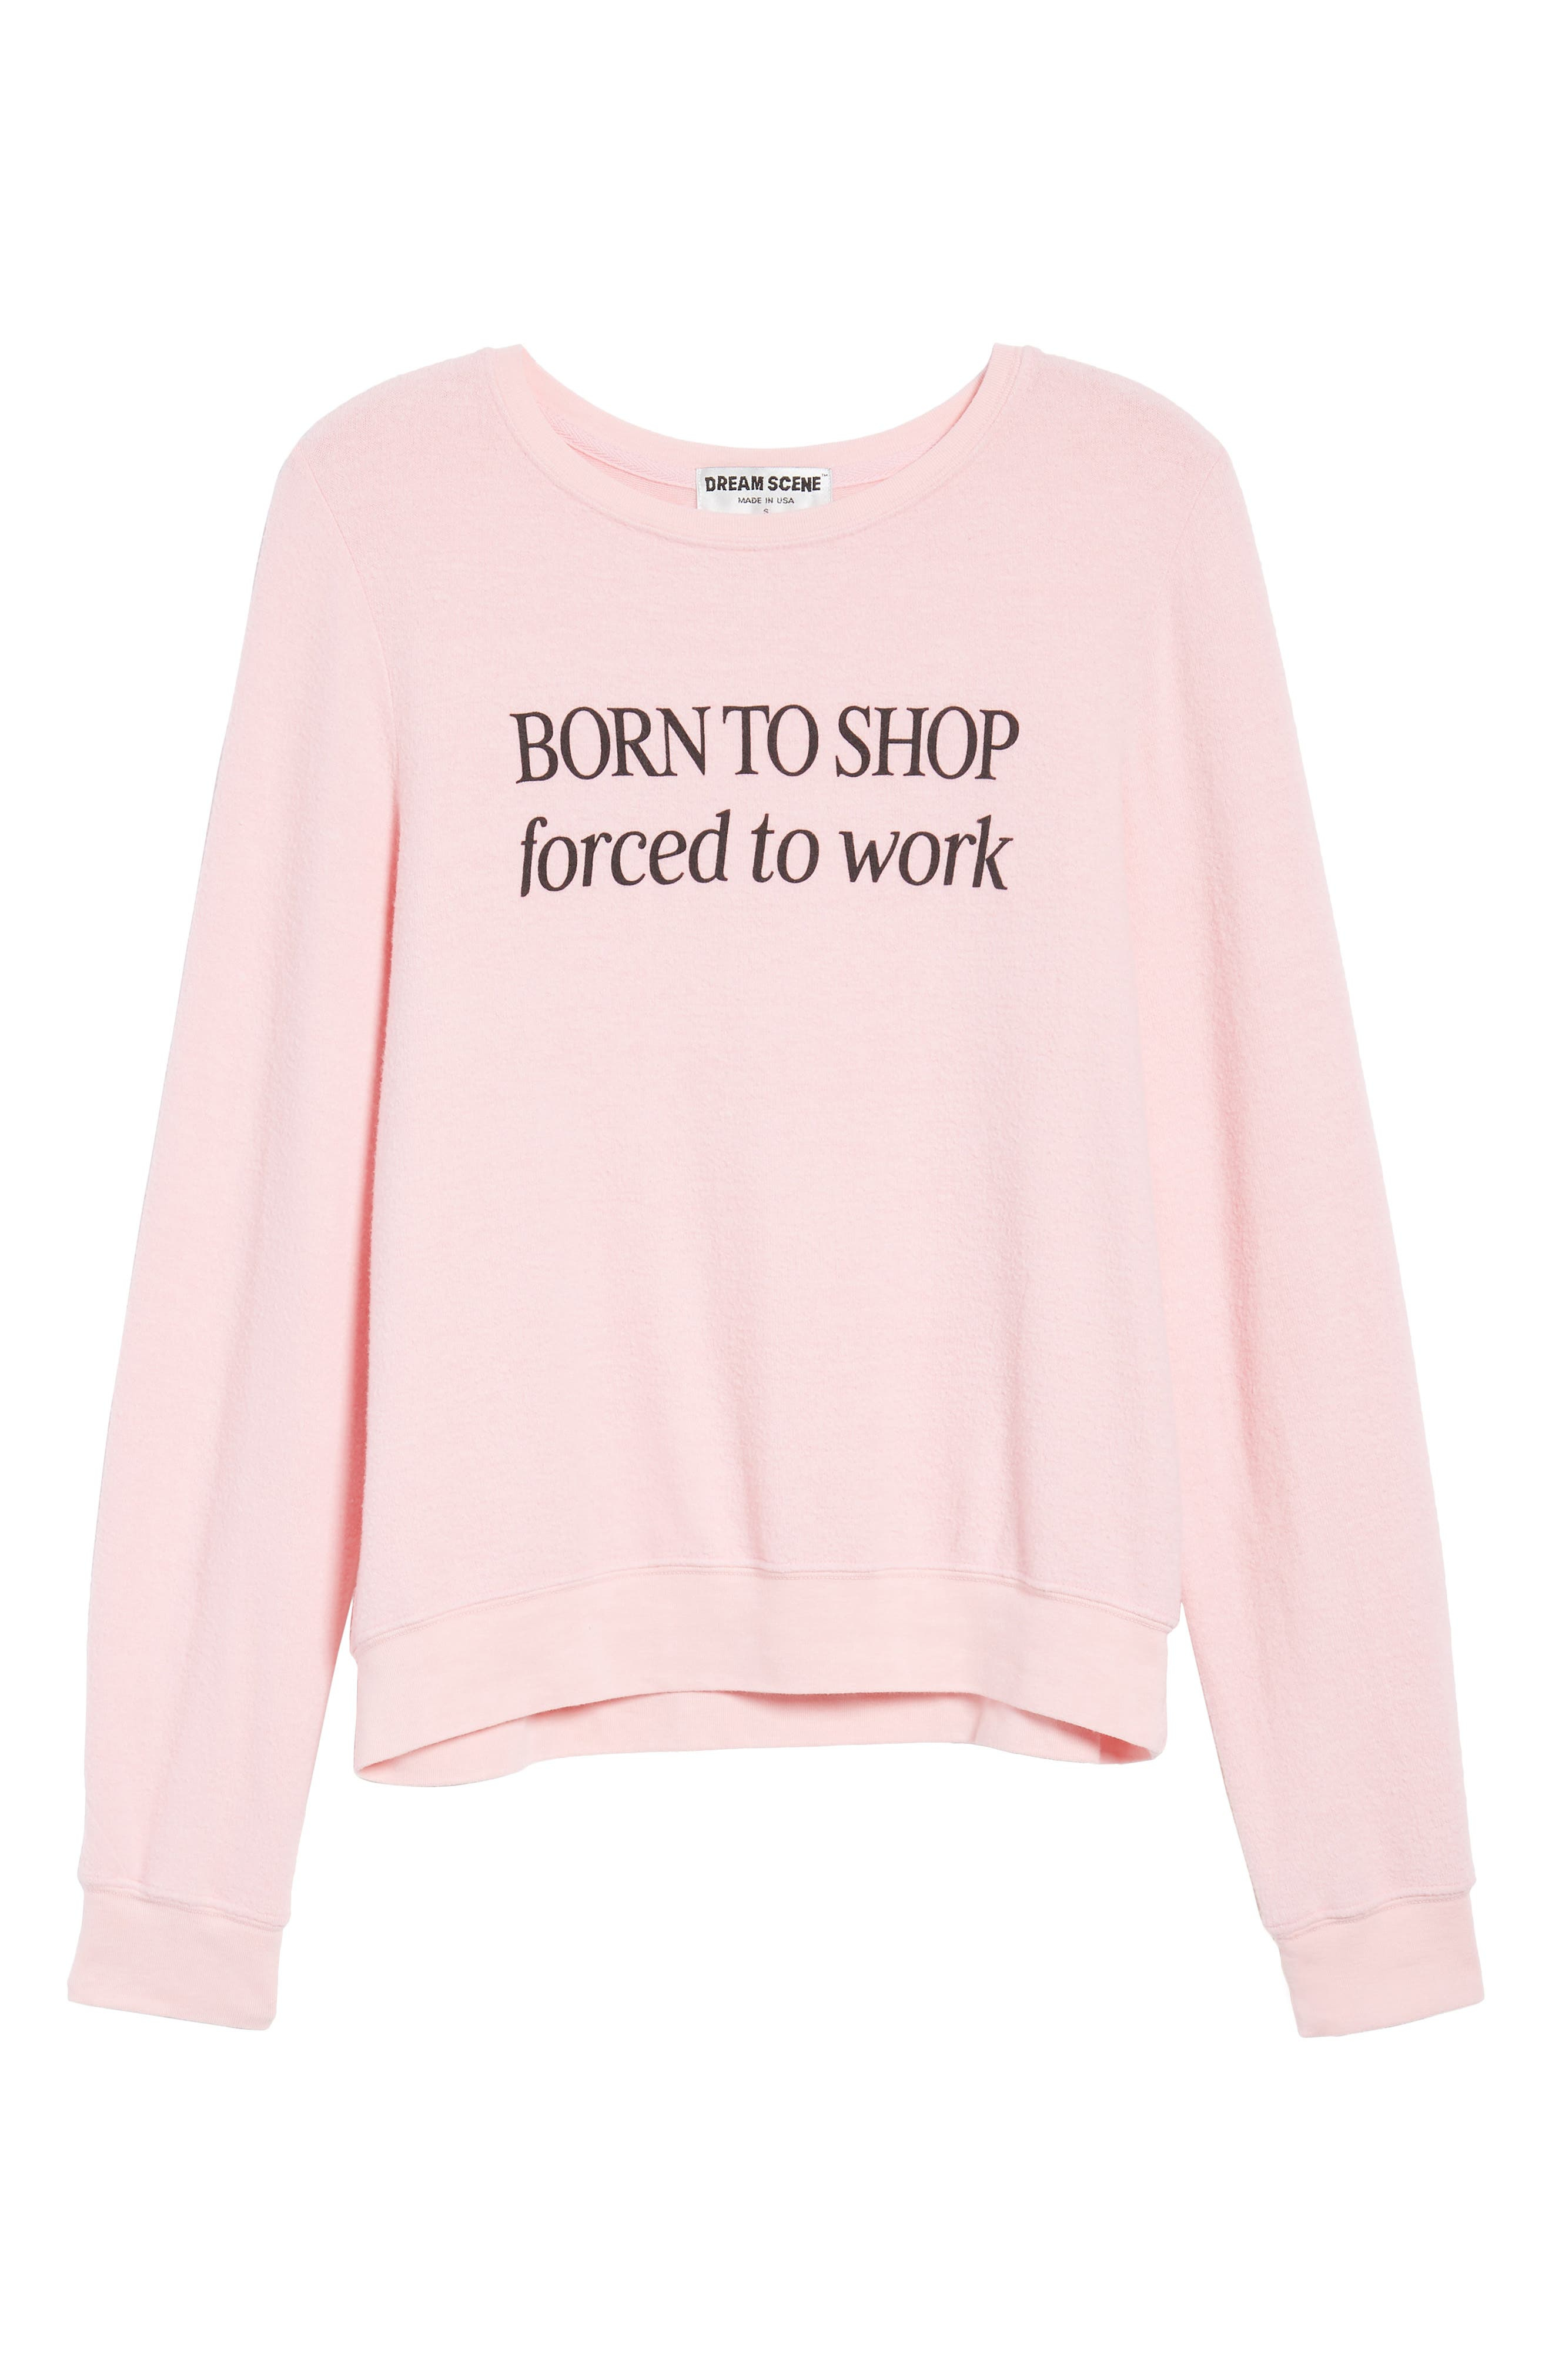 Born to Shop Forced to Work Sweatshirt,                             Alternate thumbnail 7, color,                             Lolita